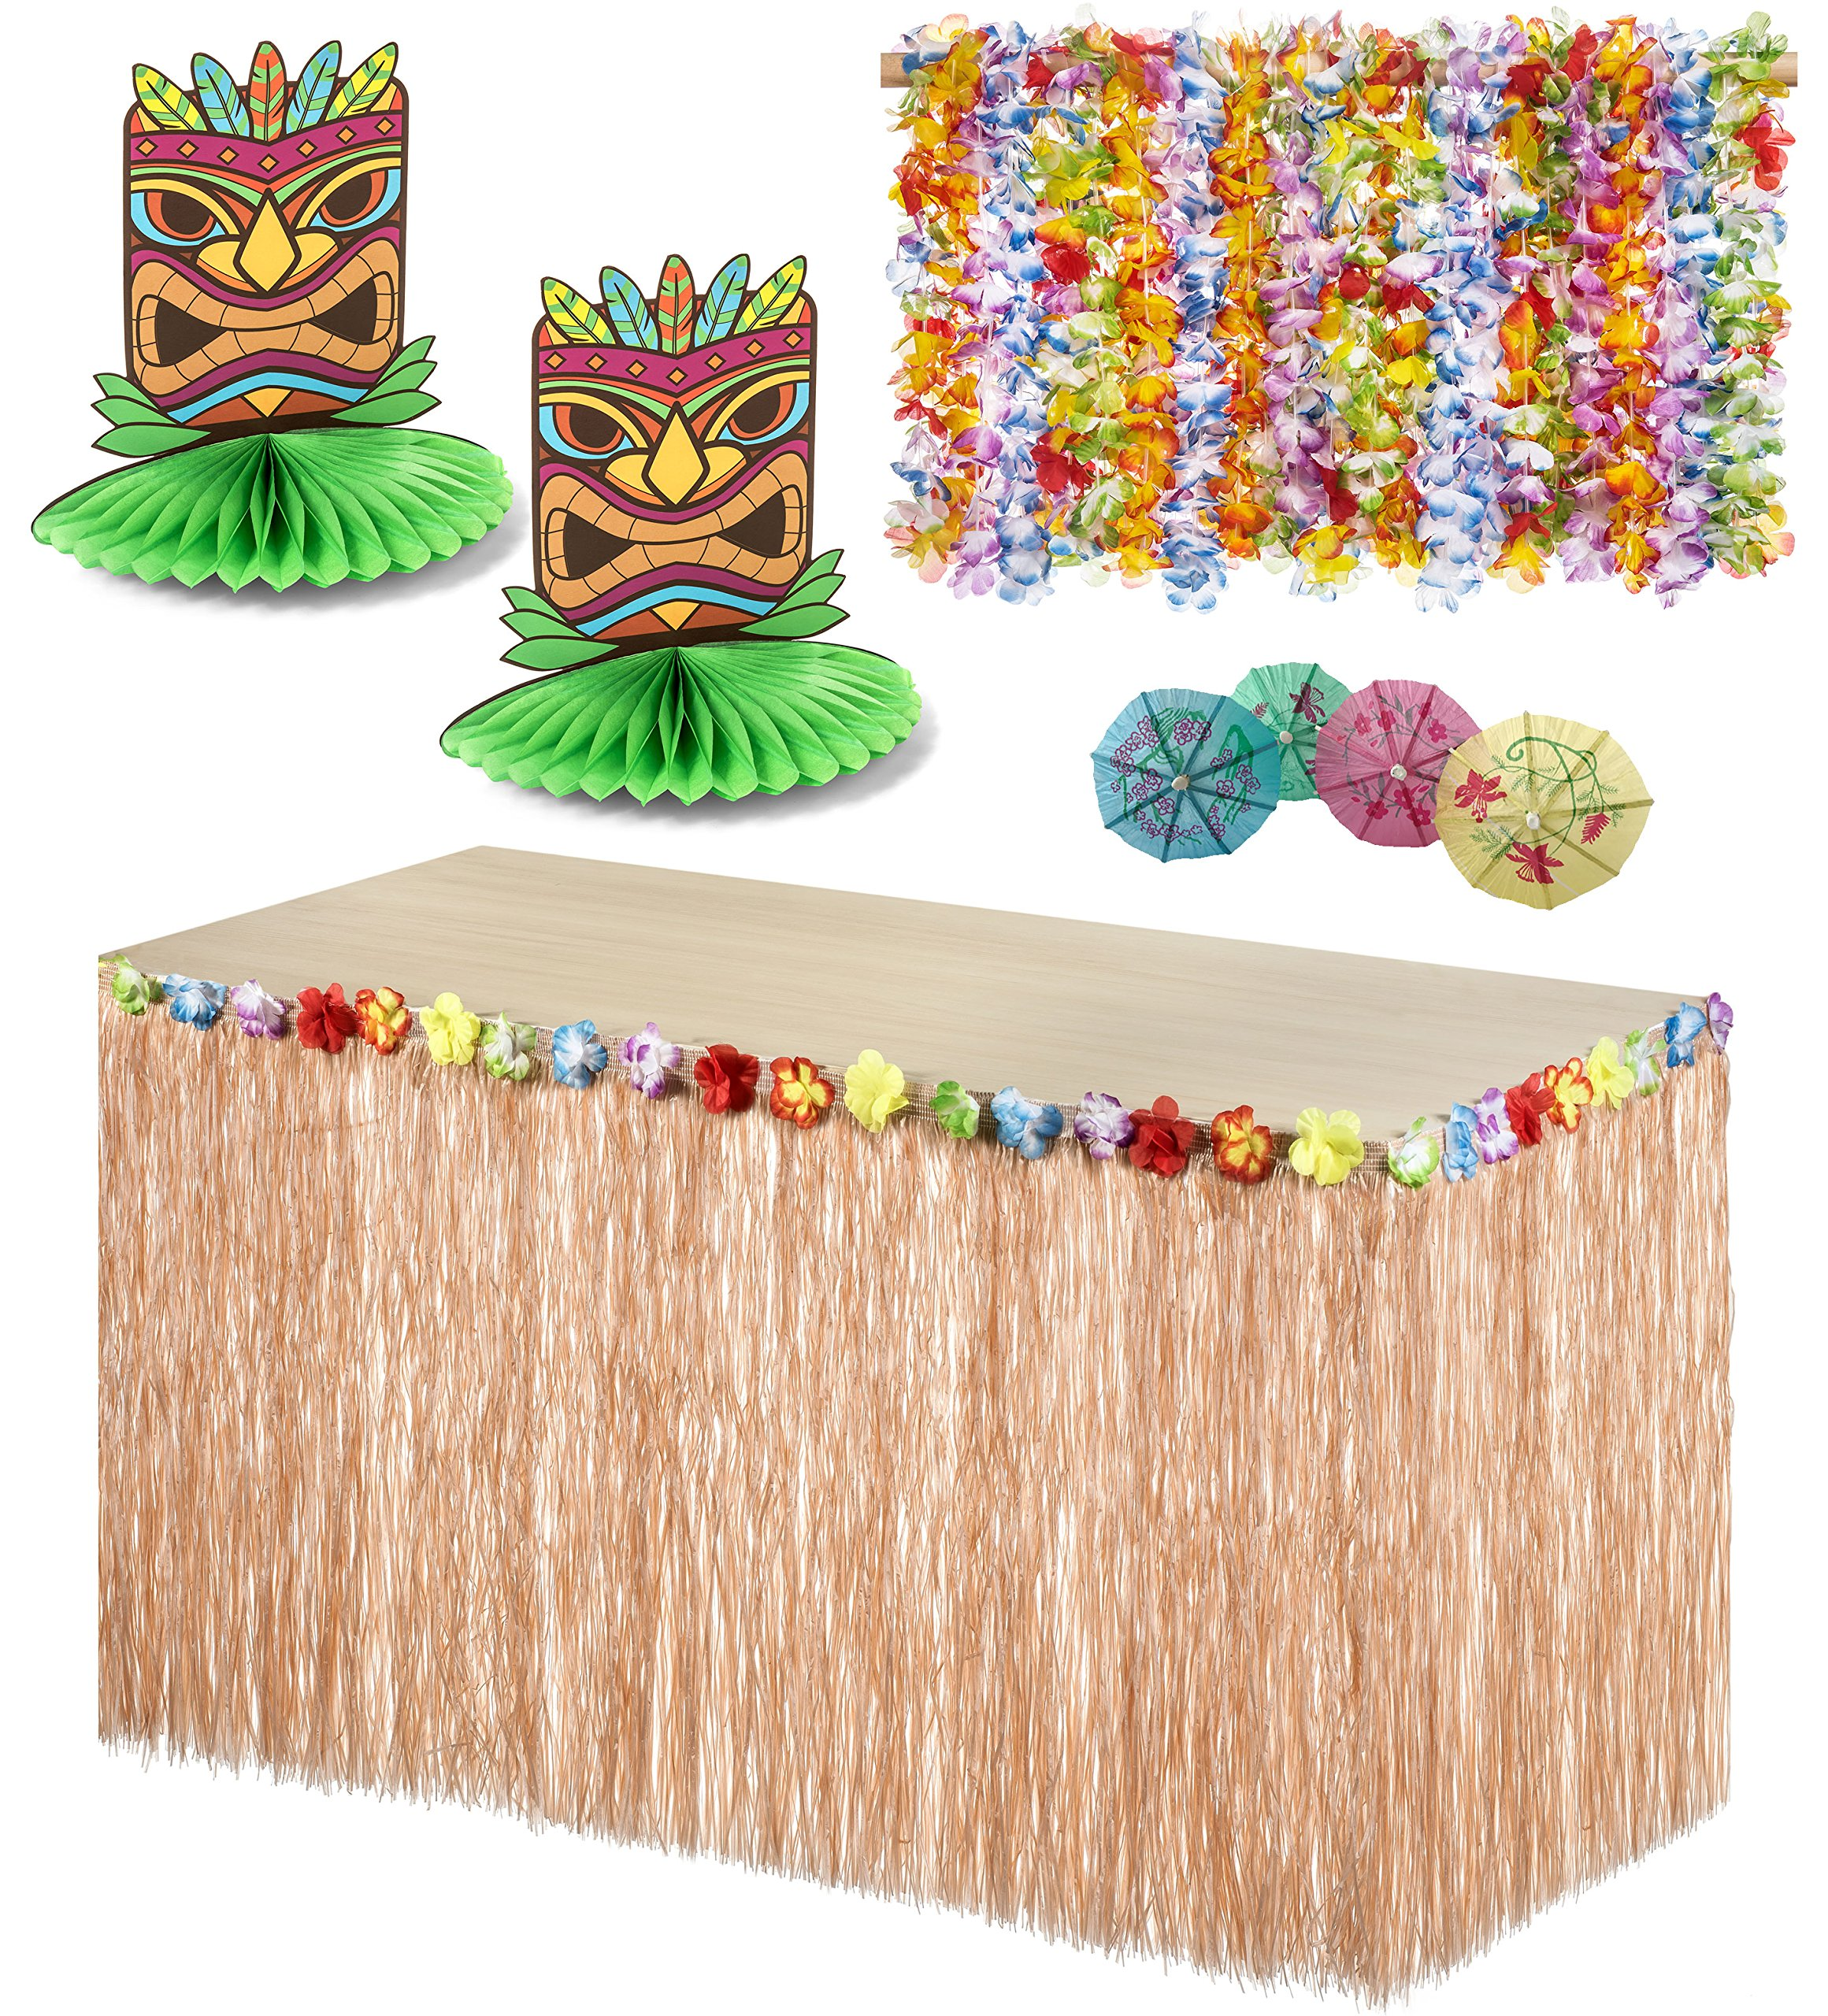 Tropical Luau Hula Party Beach Decoration Combo Pack - 36 Lei Necklaces, 144 Cocktail Drink Umbrellas, Hawaiian Grass Floral Table Skirt, and 2 Tiki Man Centerpieces - Haute Soiree by Haute Soiree